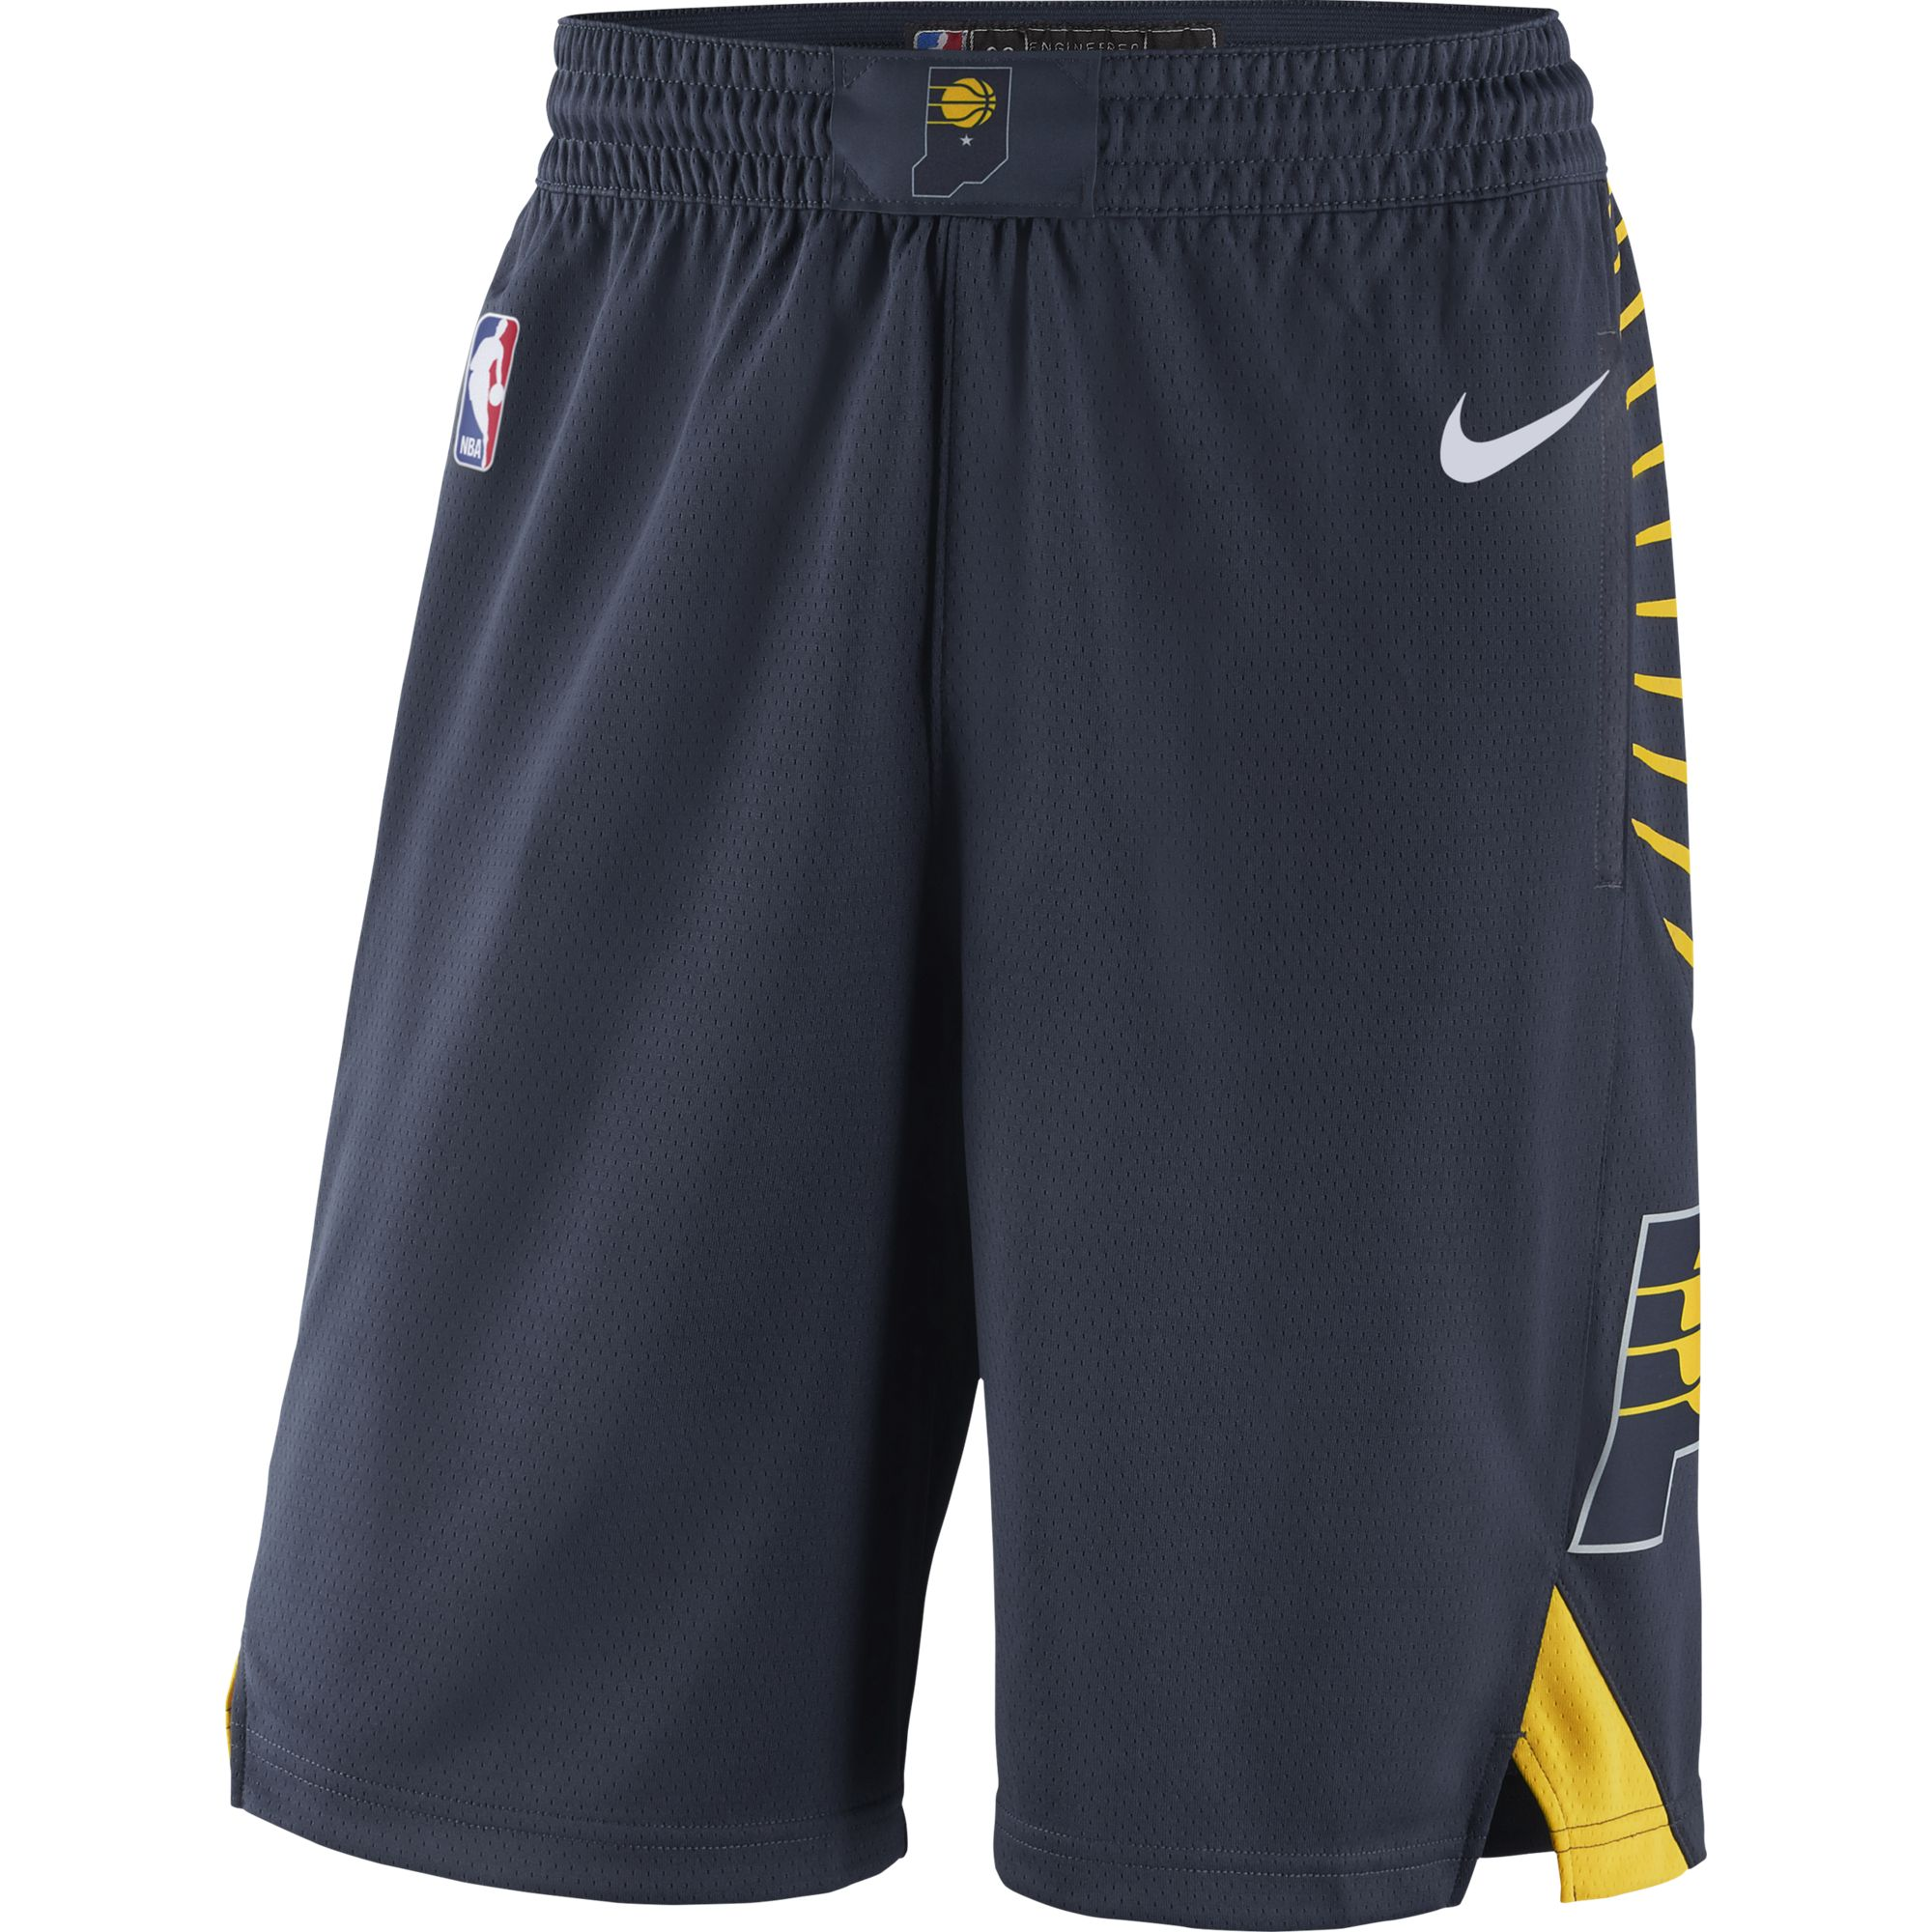 Indiana Pacers Nike 2019/20 Icon Edition Swingman Shorts - Navy